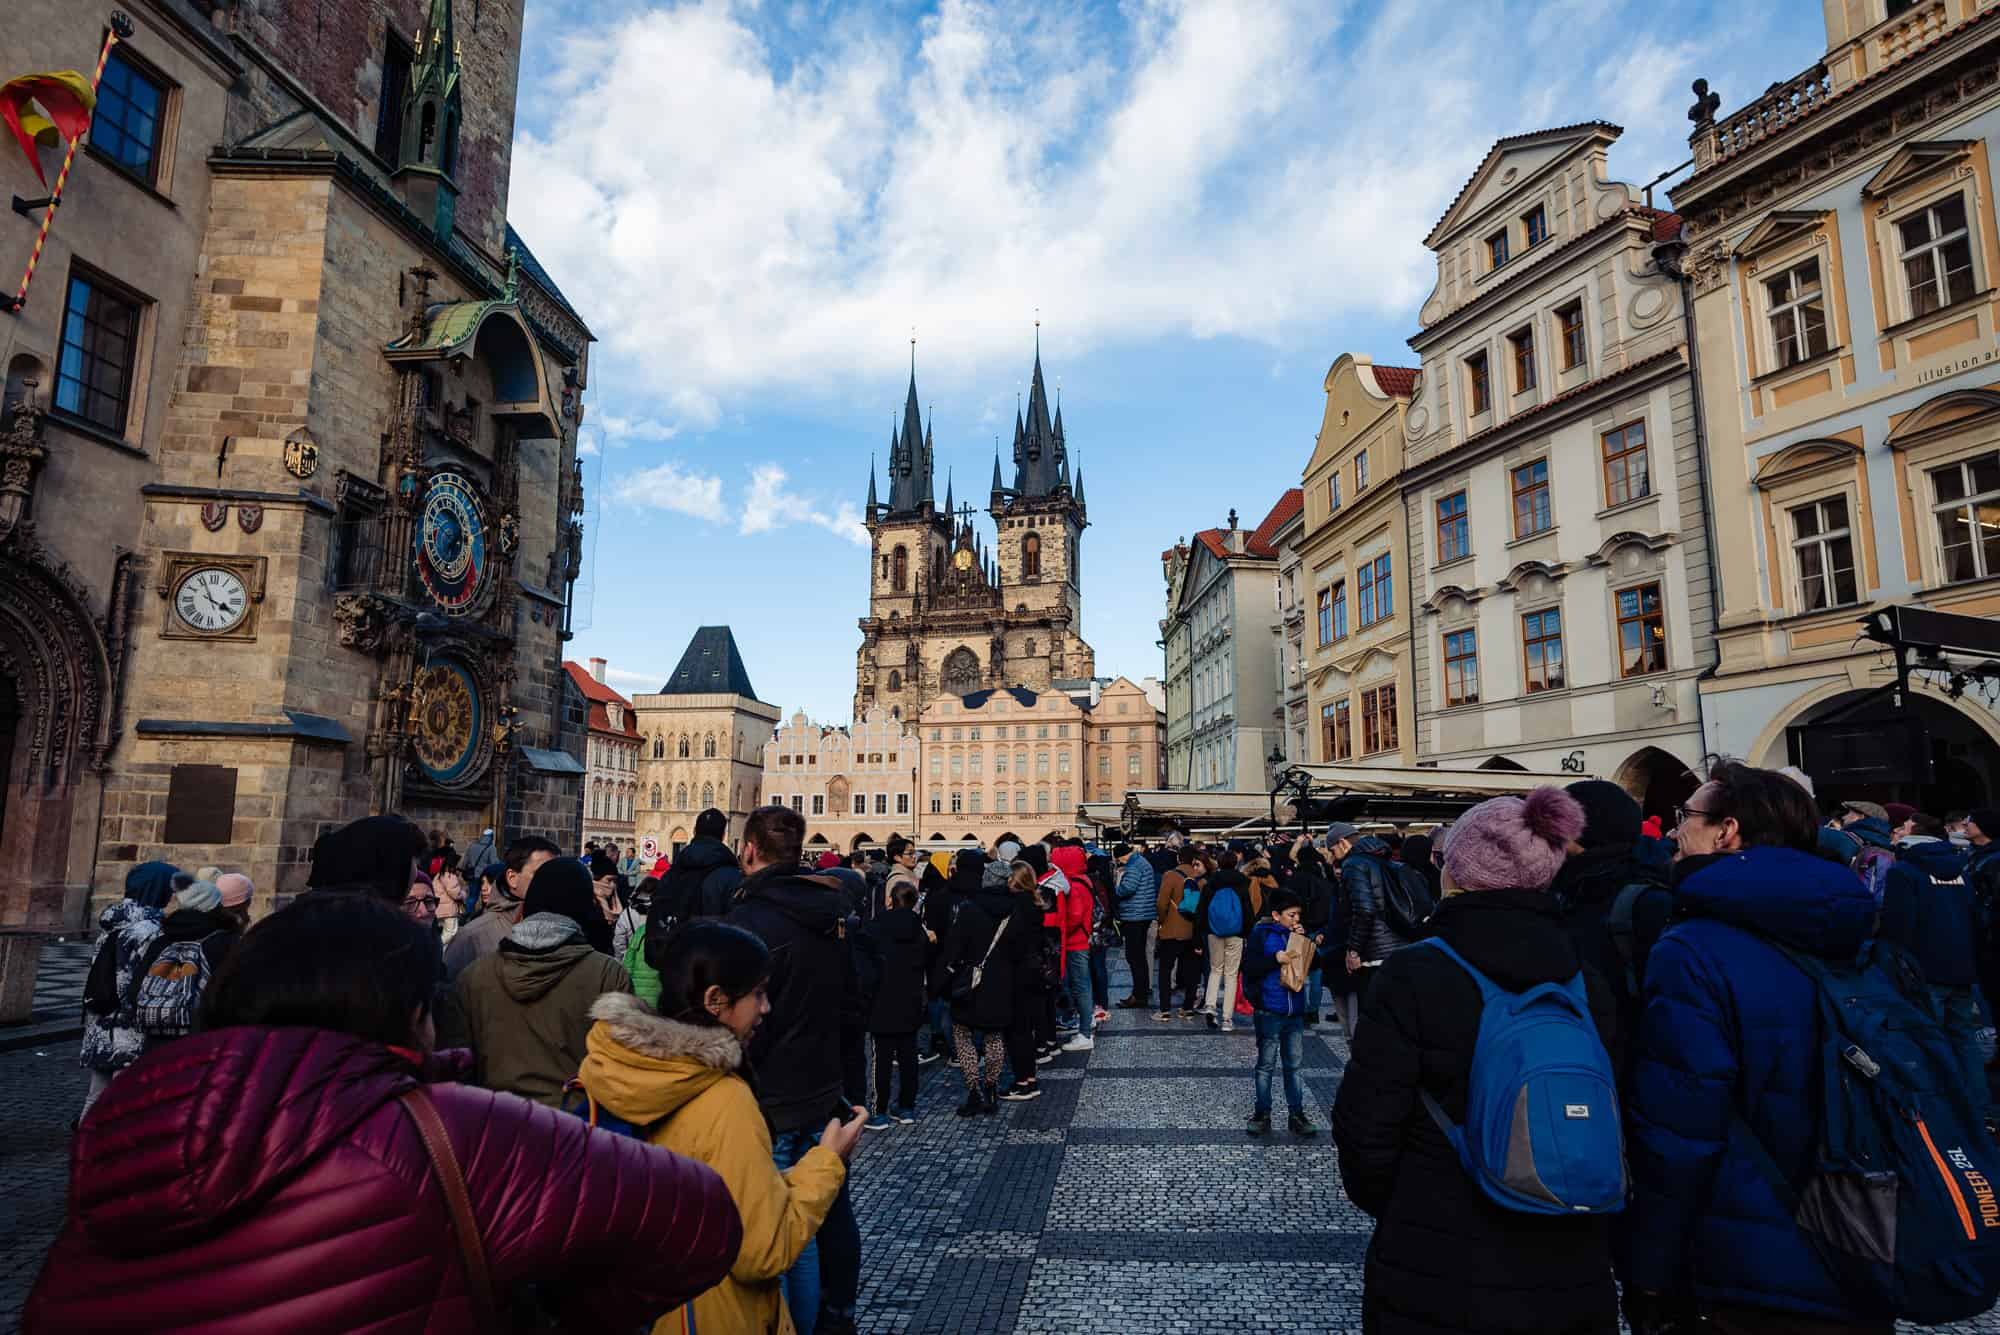 Vacation photo shot through a crowd of people in the town square in Prague